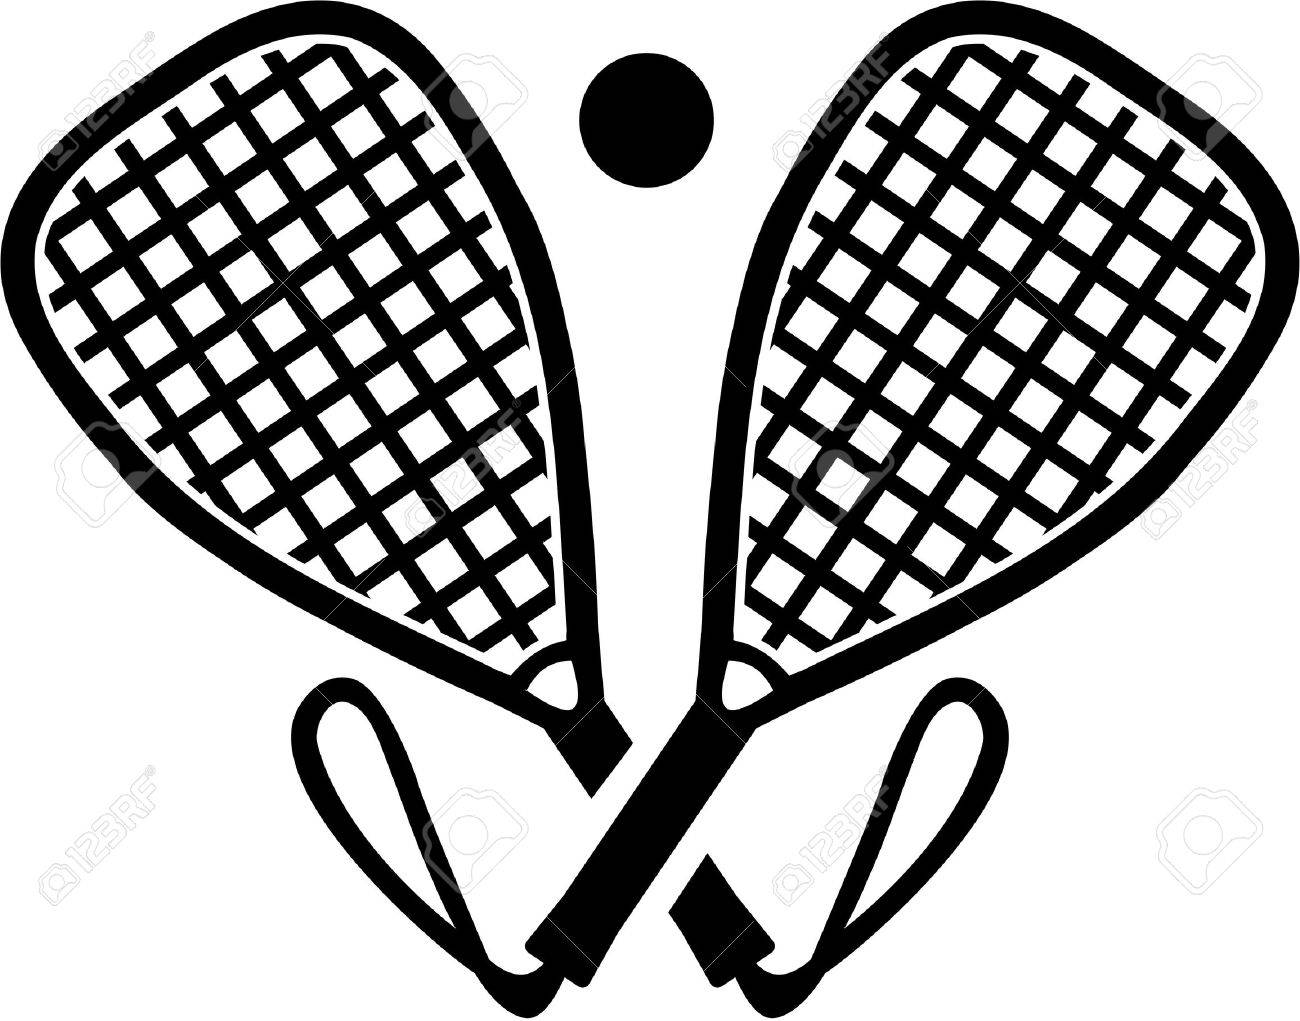 Racquetball clipart free 3 » Clipart Station.